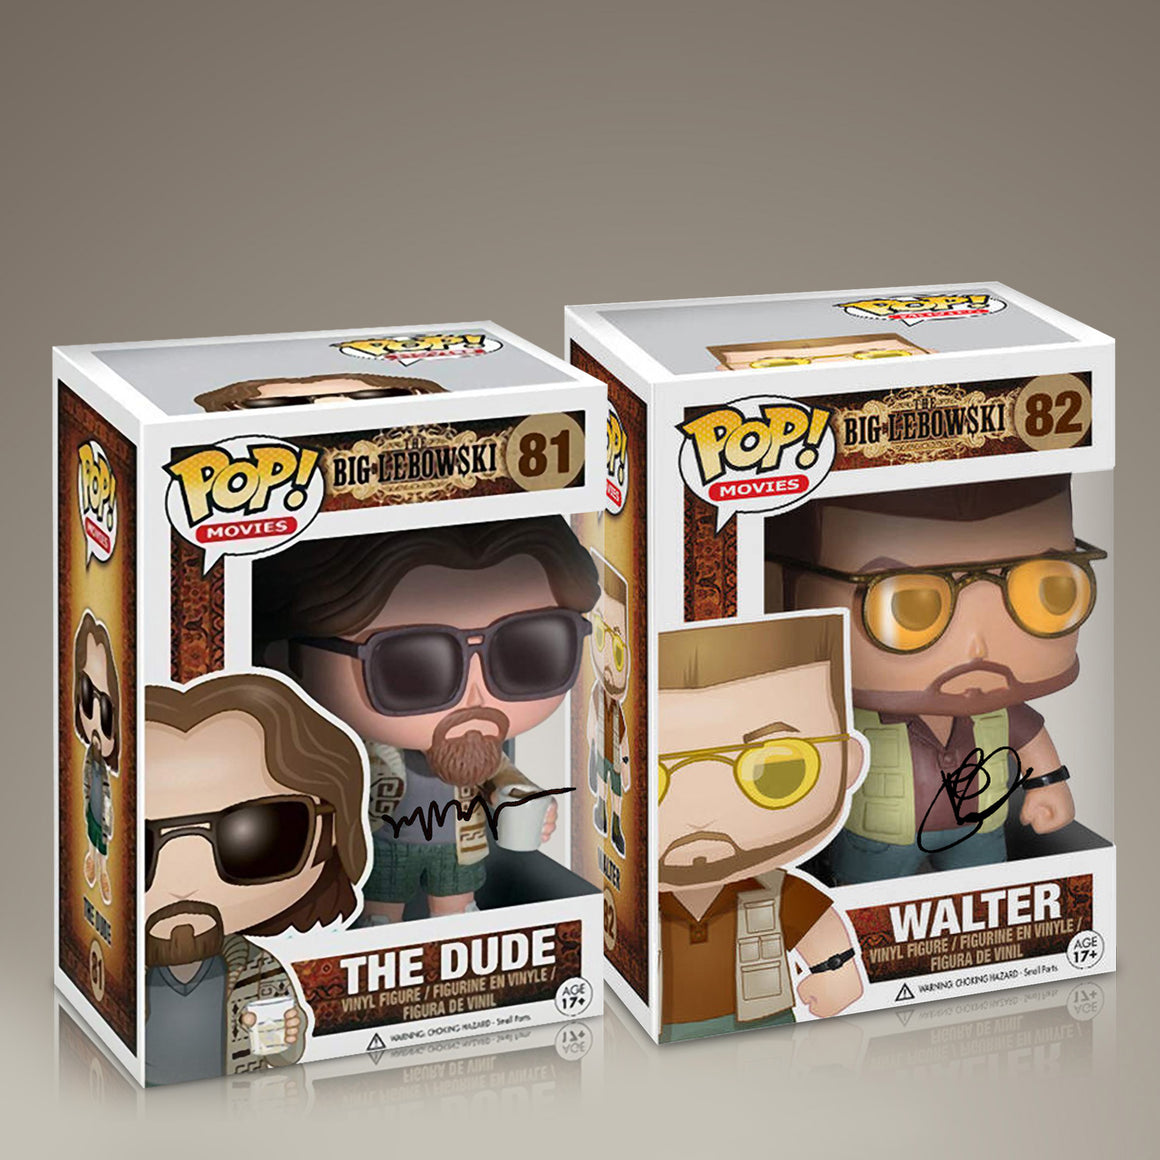 Big Lebowski- The Dude & Walter 'RARE' Set of 2, Hand-Signed Funko POPS by Jeff Bridges & John Goodman